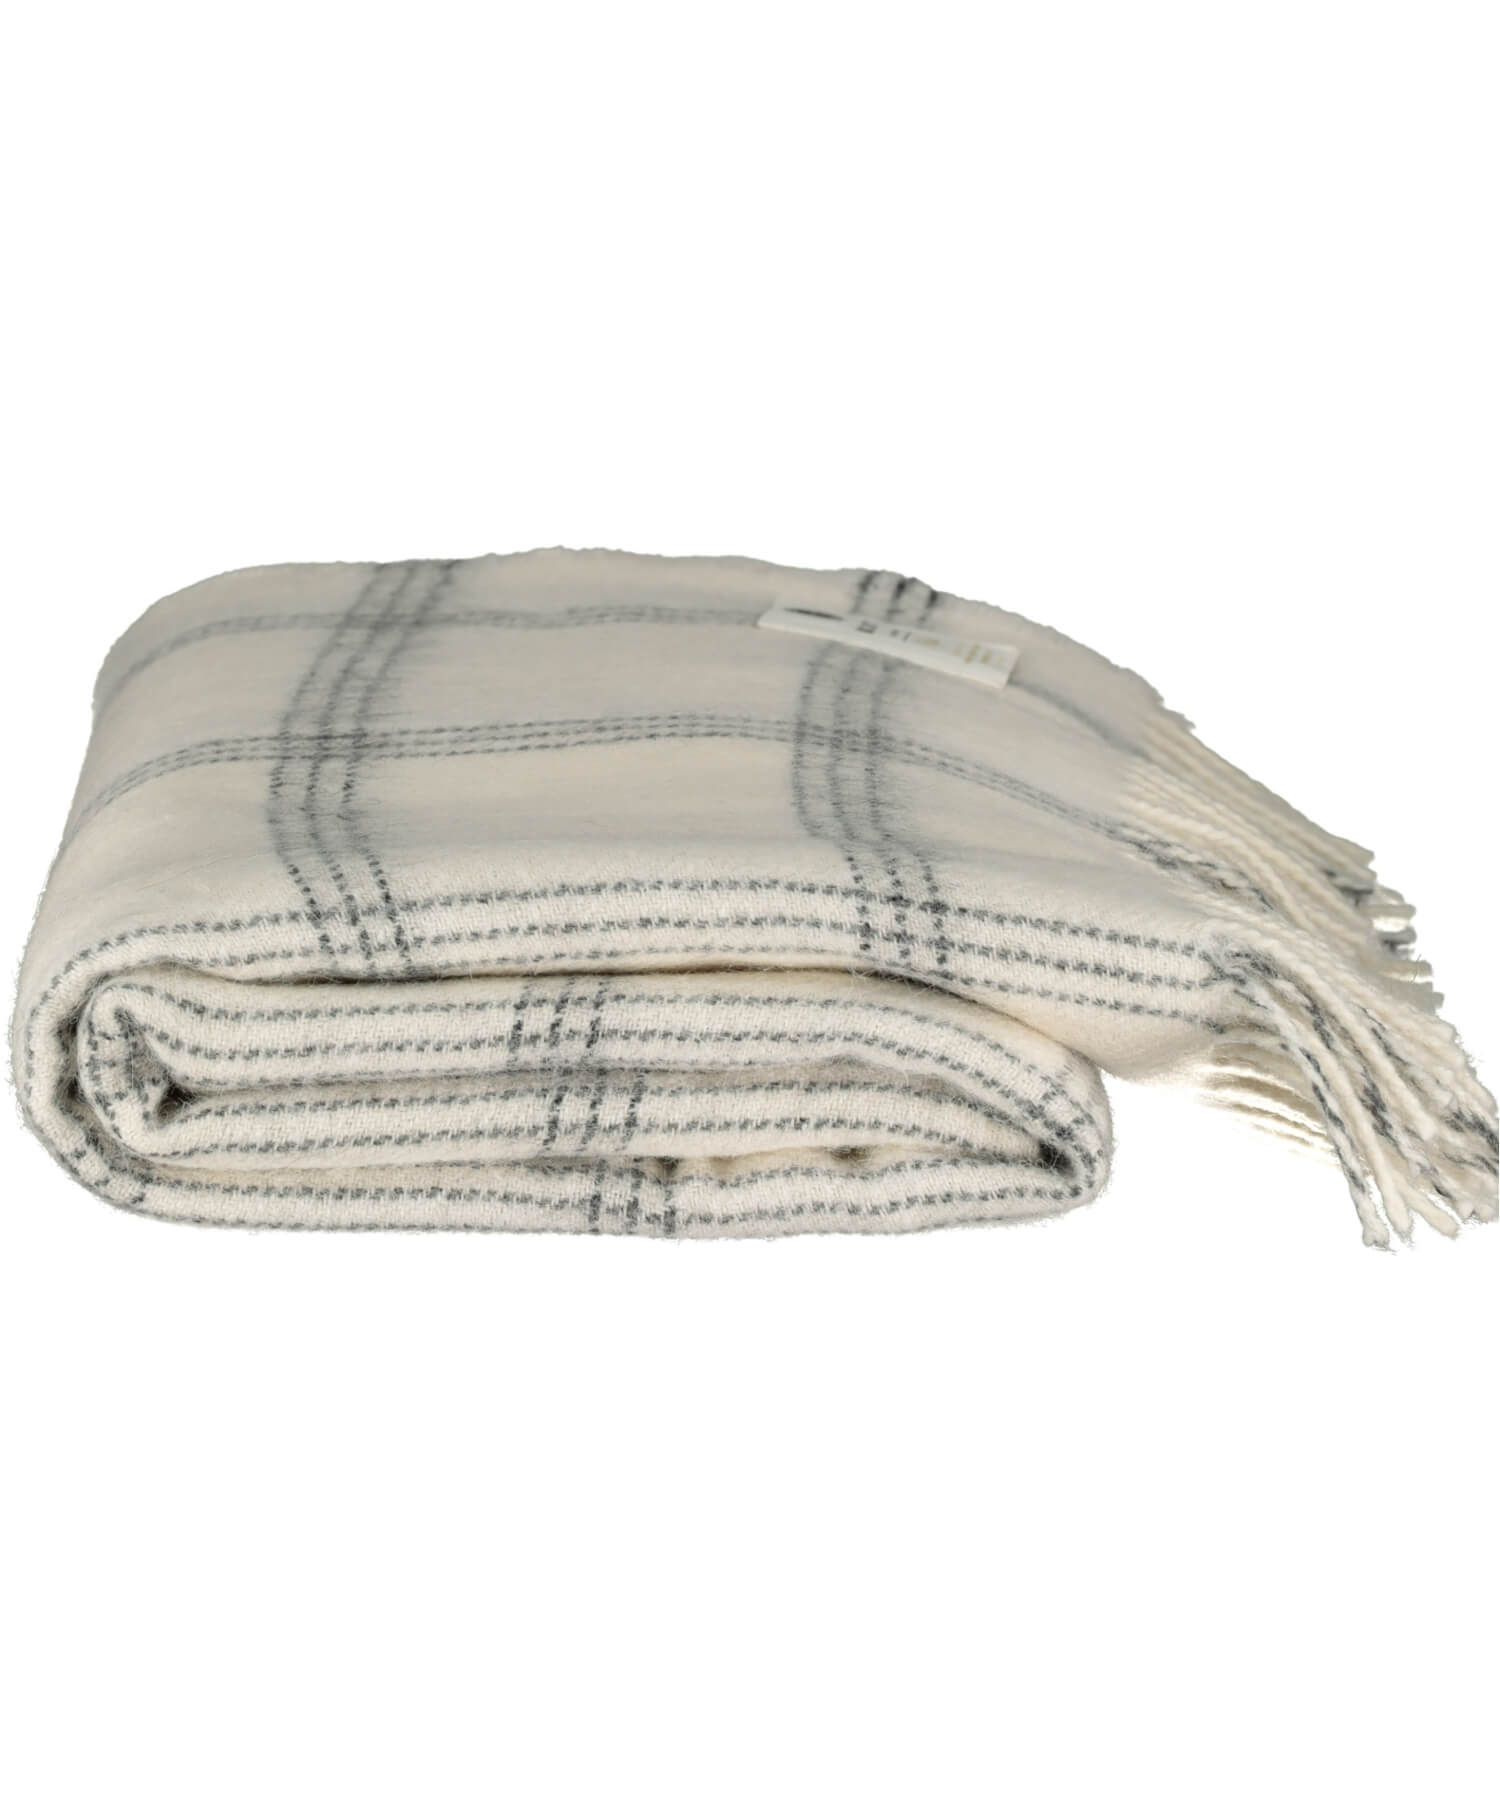 Alpaca Throw - White Pearl - [McNutts] - Throws & Cushions - Irish Gifts